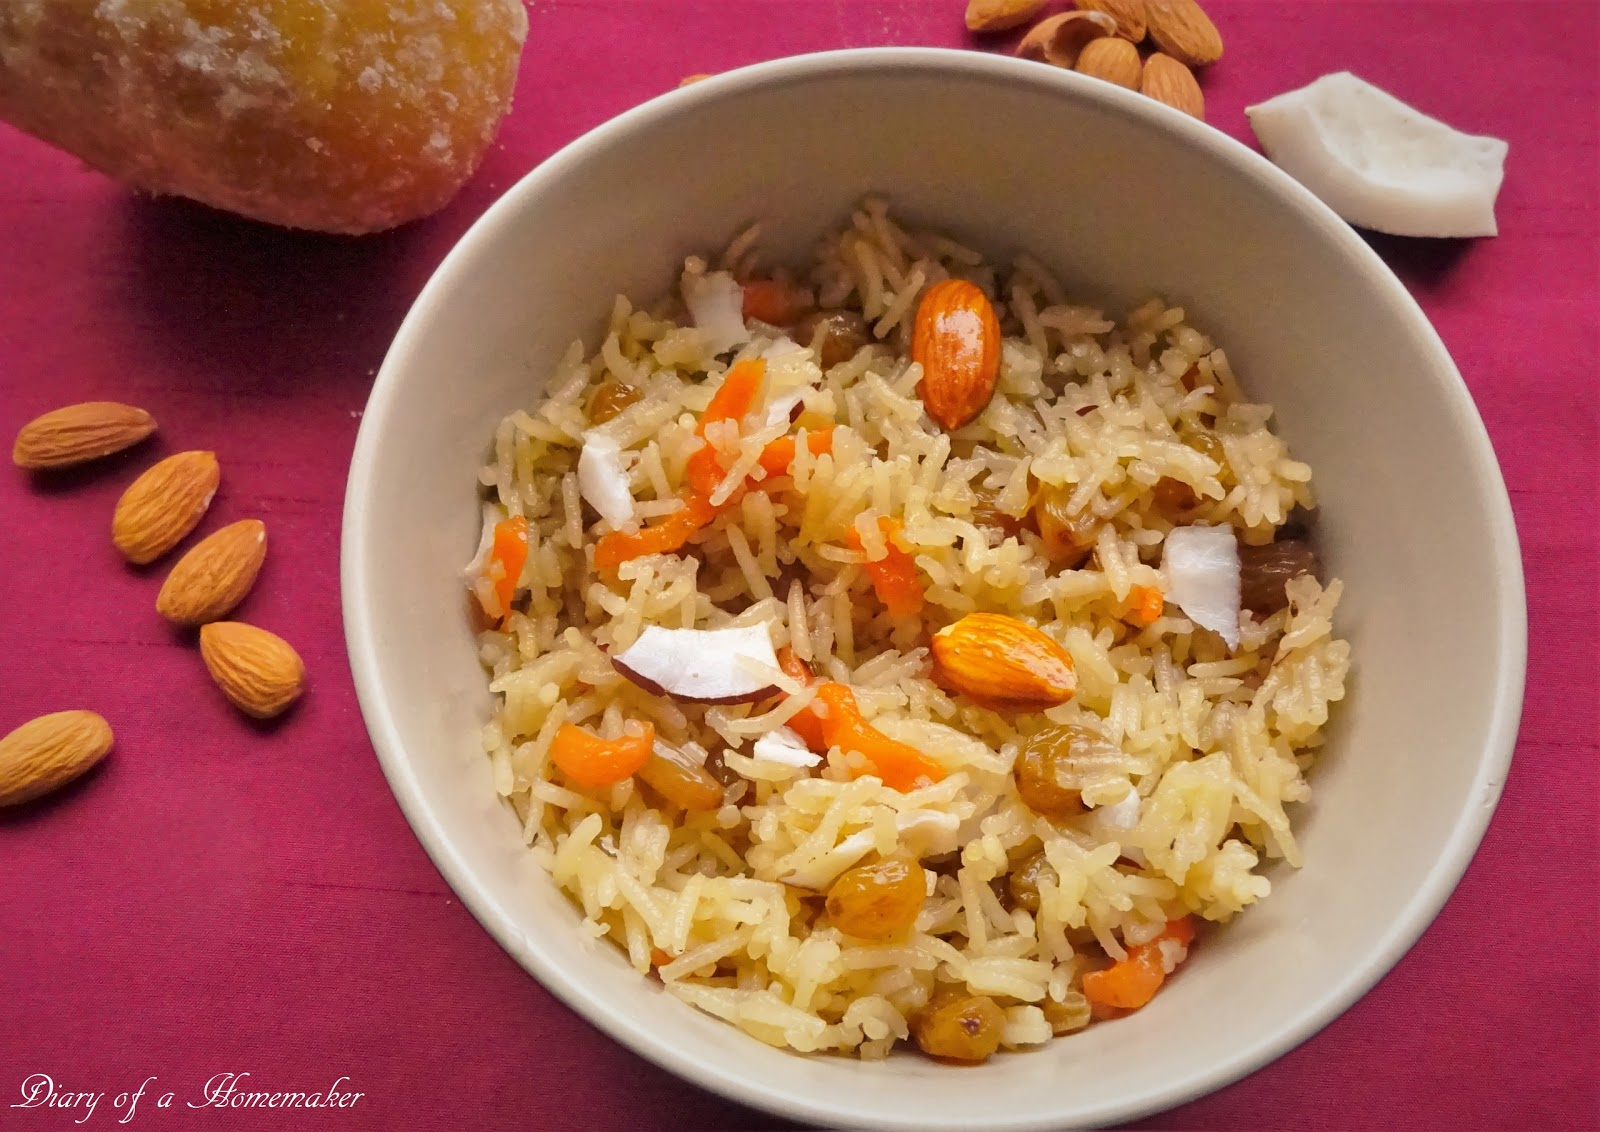 Diary of a Homemaker Delicious Home cooked Recipe ...